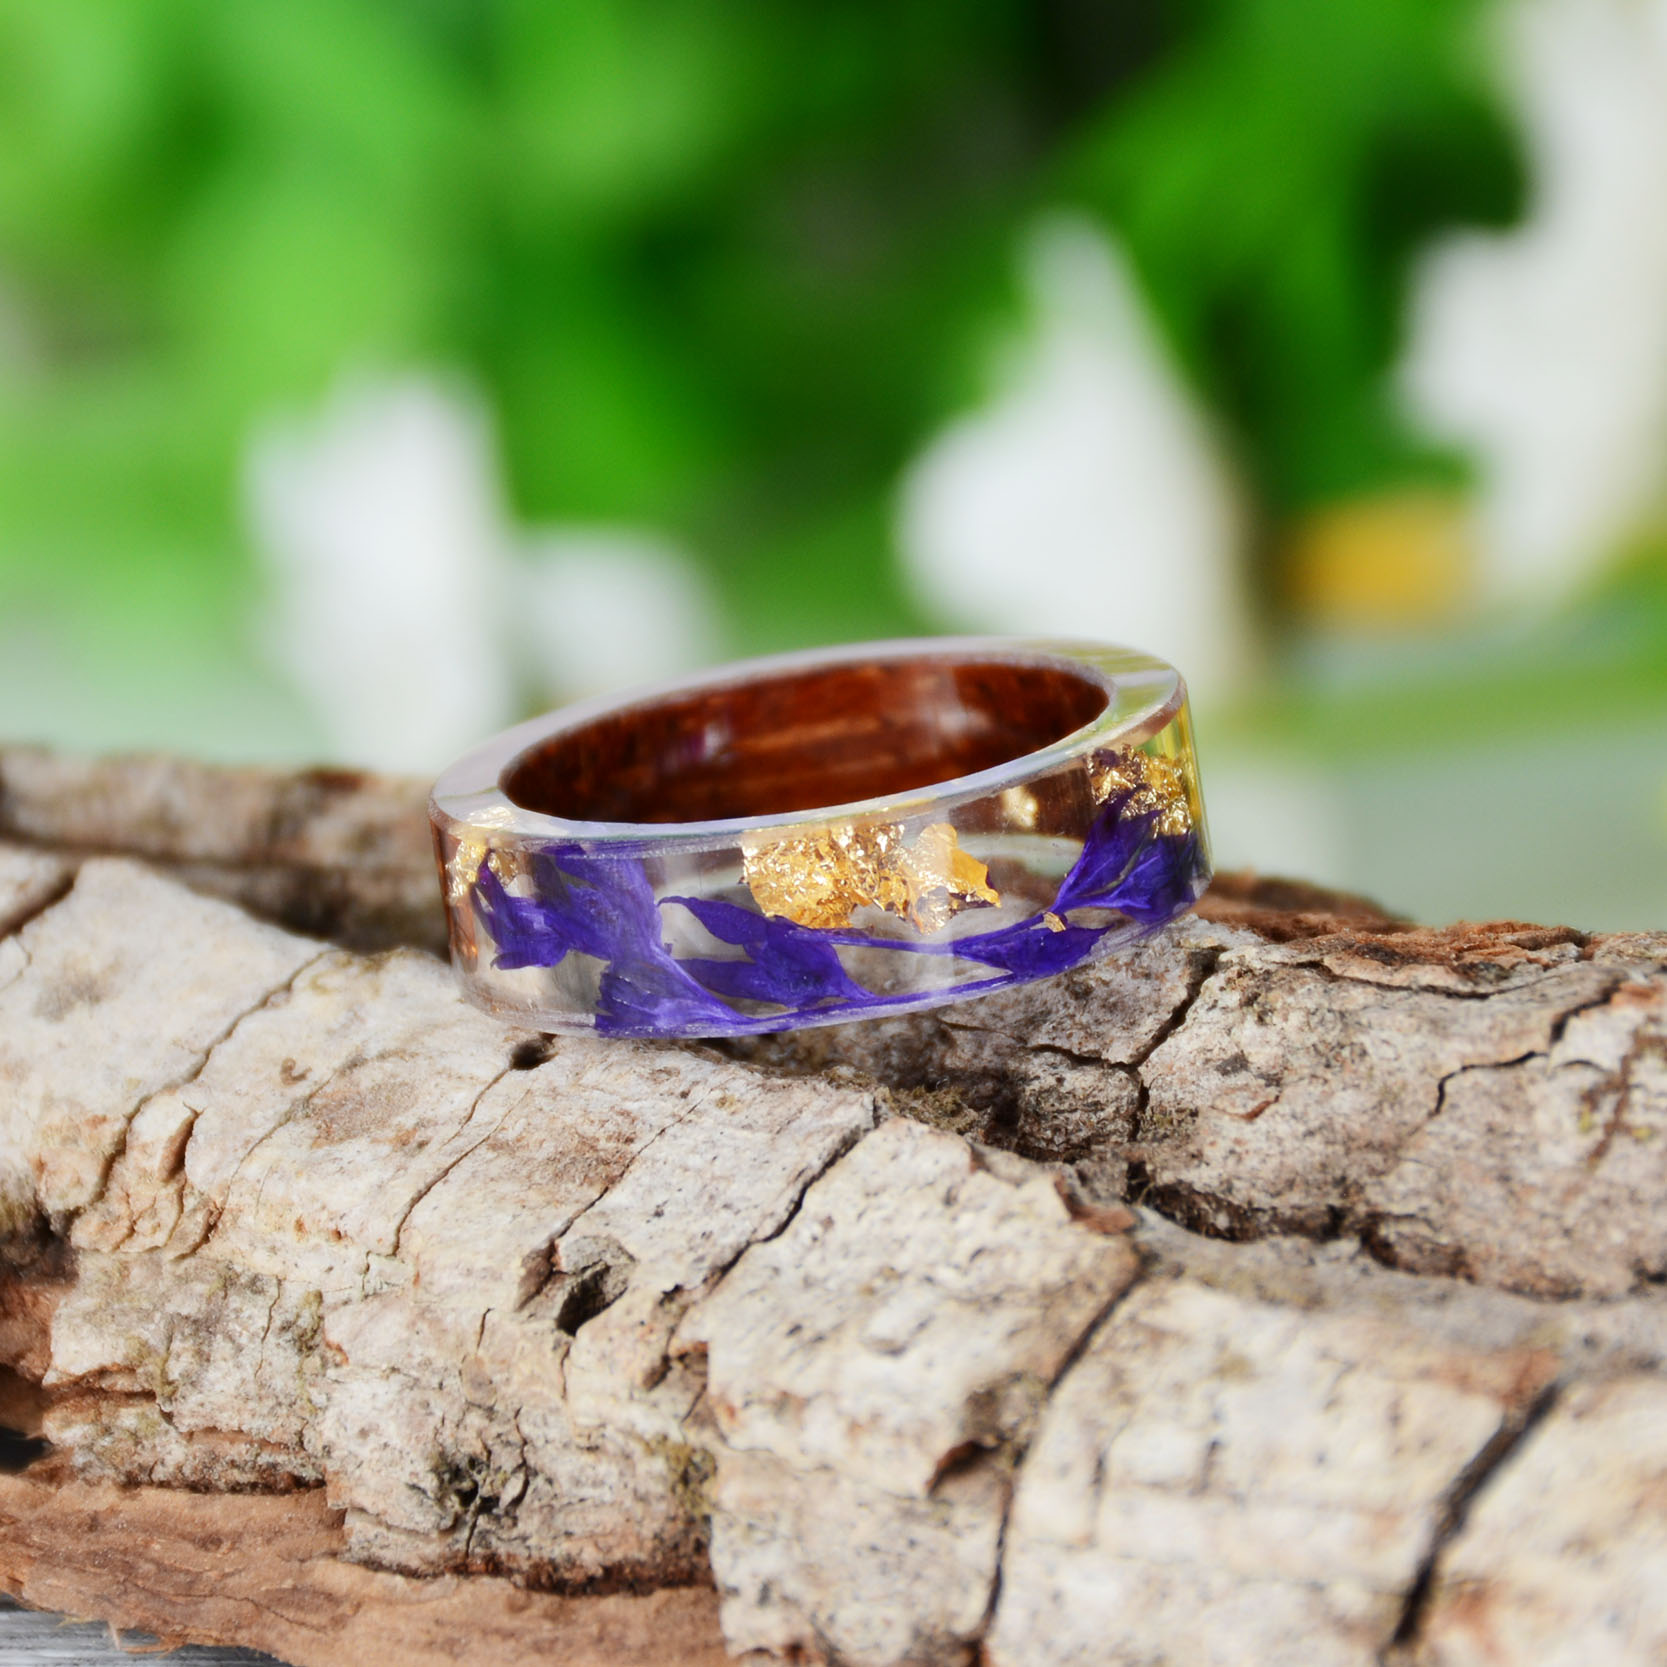 HTB1MhtiKv1TBuNjy0Fjq6yjyXXag - Hot Sale Handmade Wood Resin Ring Dried Flowers Plants Inside Jewelry Resin Ring Transparent Anniversary Ring for Women